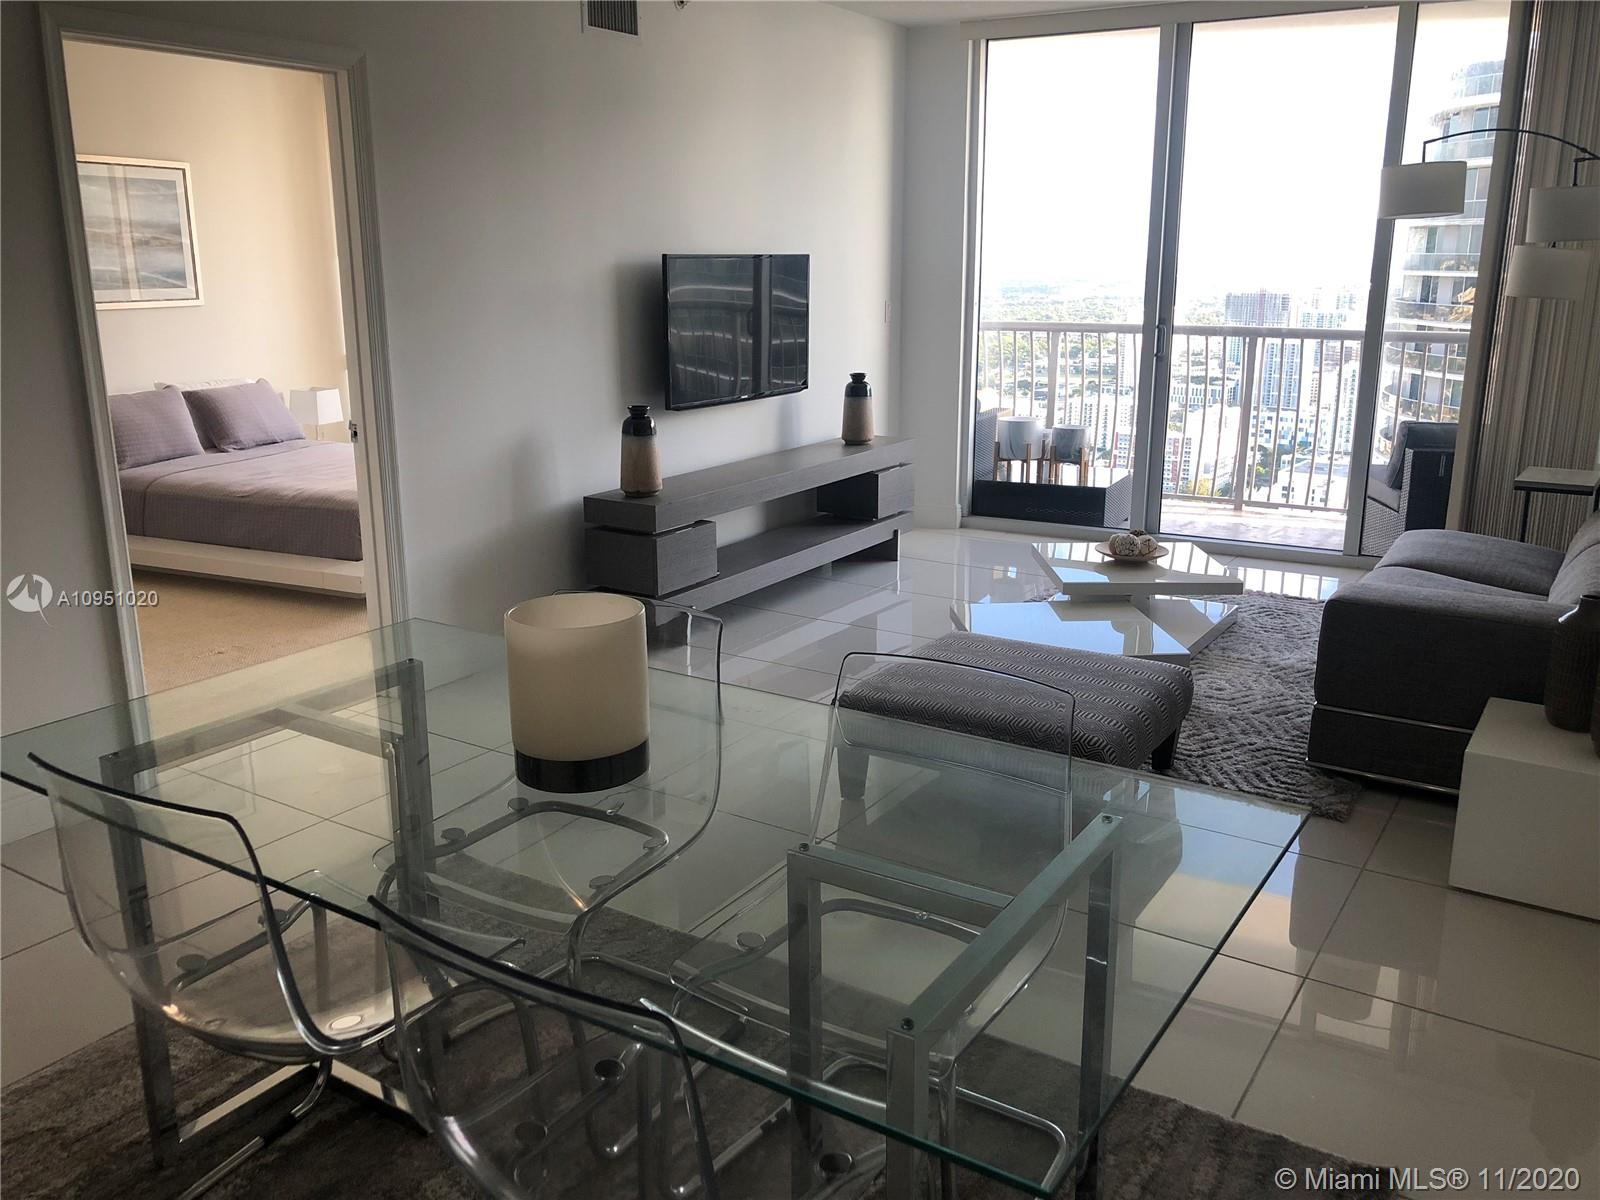 Enjoy breathtaking views of the city and Biscayne Bay in this elegant and comfortable one-bedroom Penthouse on the 54th floor. 1bed/1bath, w/c, full size kitchen, living-dining room, w/d, ss appliances, marble countertop kitchen and aluminum shower panel tower with rainfall shower-head.   10 min drive from Miami Beach and Downtown. 20 min drive from Miami International Airport. Resort-style amenities like a fully-equipped fitness center and clubroom, lounge area overlooking the city and the bay (pool being remodeled) and convenient lobby shops.  Restaurants can be found at the building's ground floor and around the building. There is a convenience store at the lobby and formal grocery store one block away .